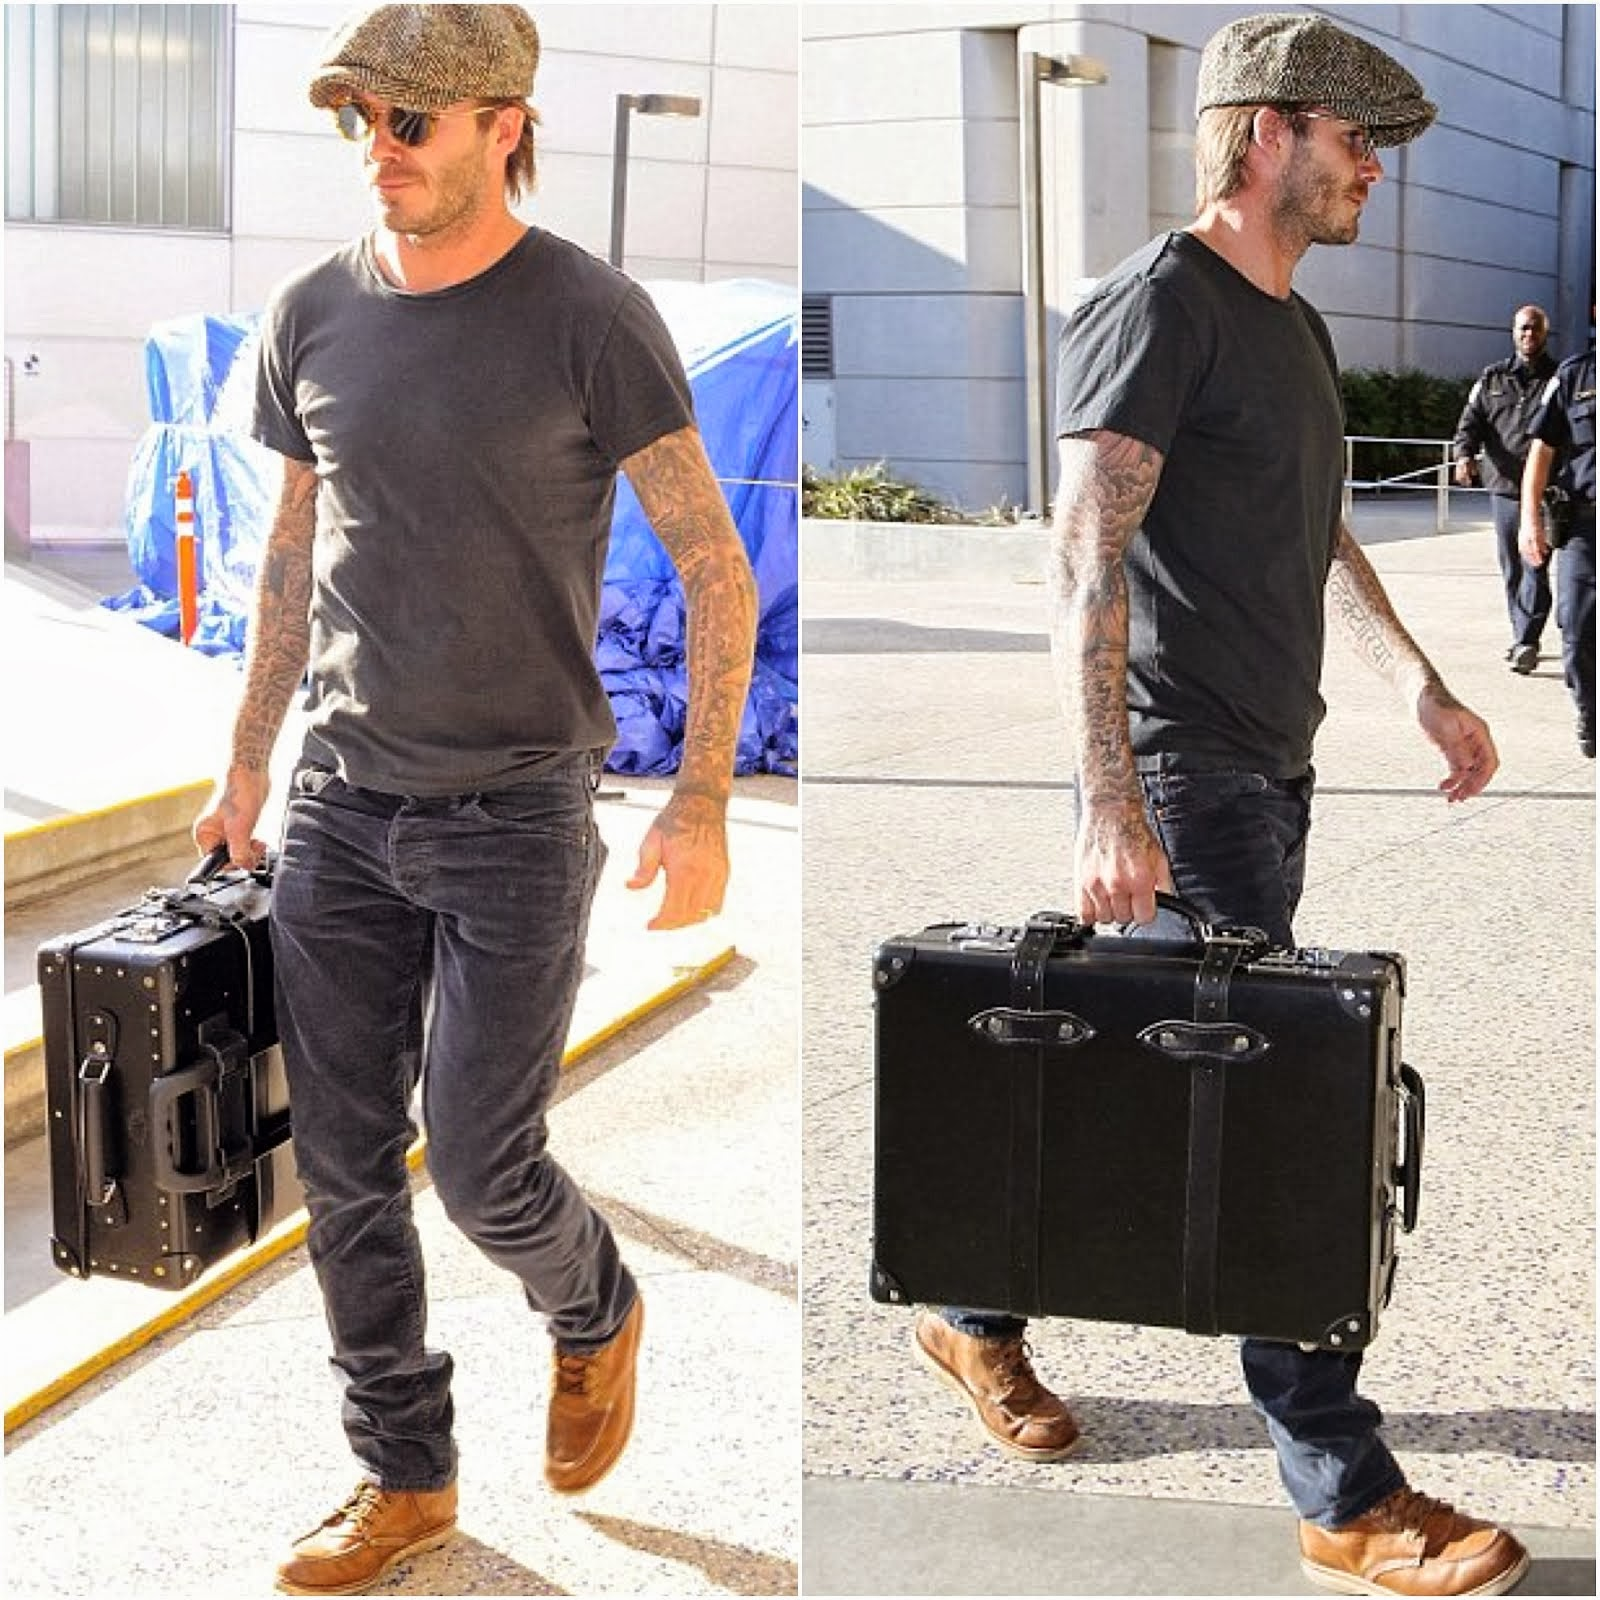 00O00 Menswear Blog: David Beckham's Globe-Trotter luggage - LAX Airport October 2013